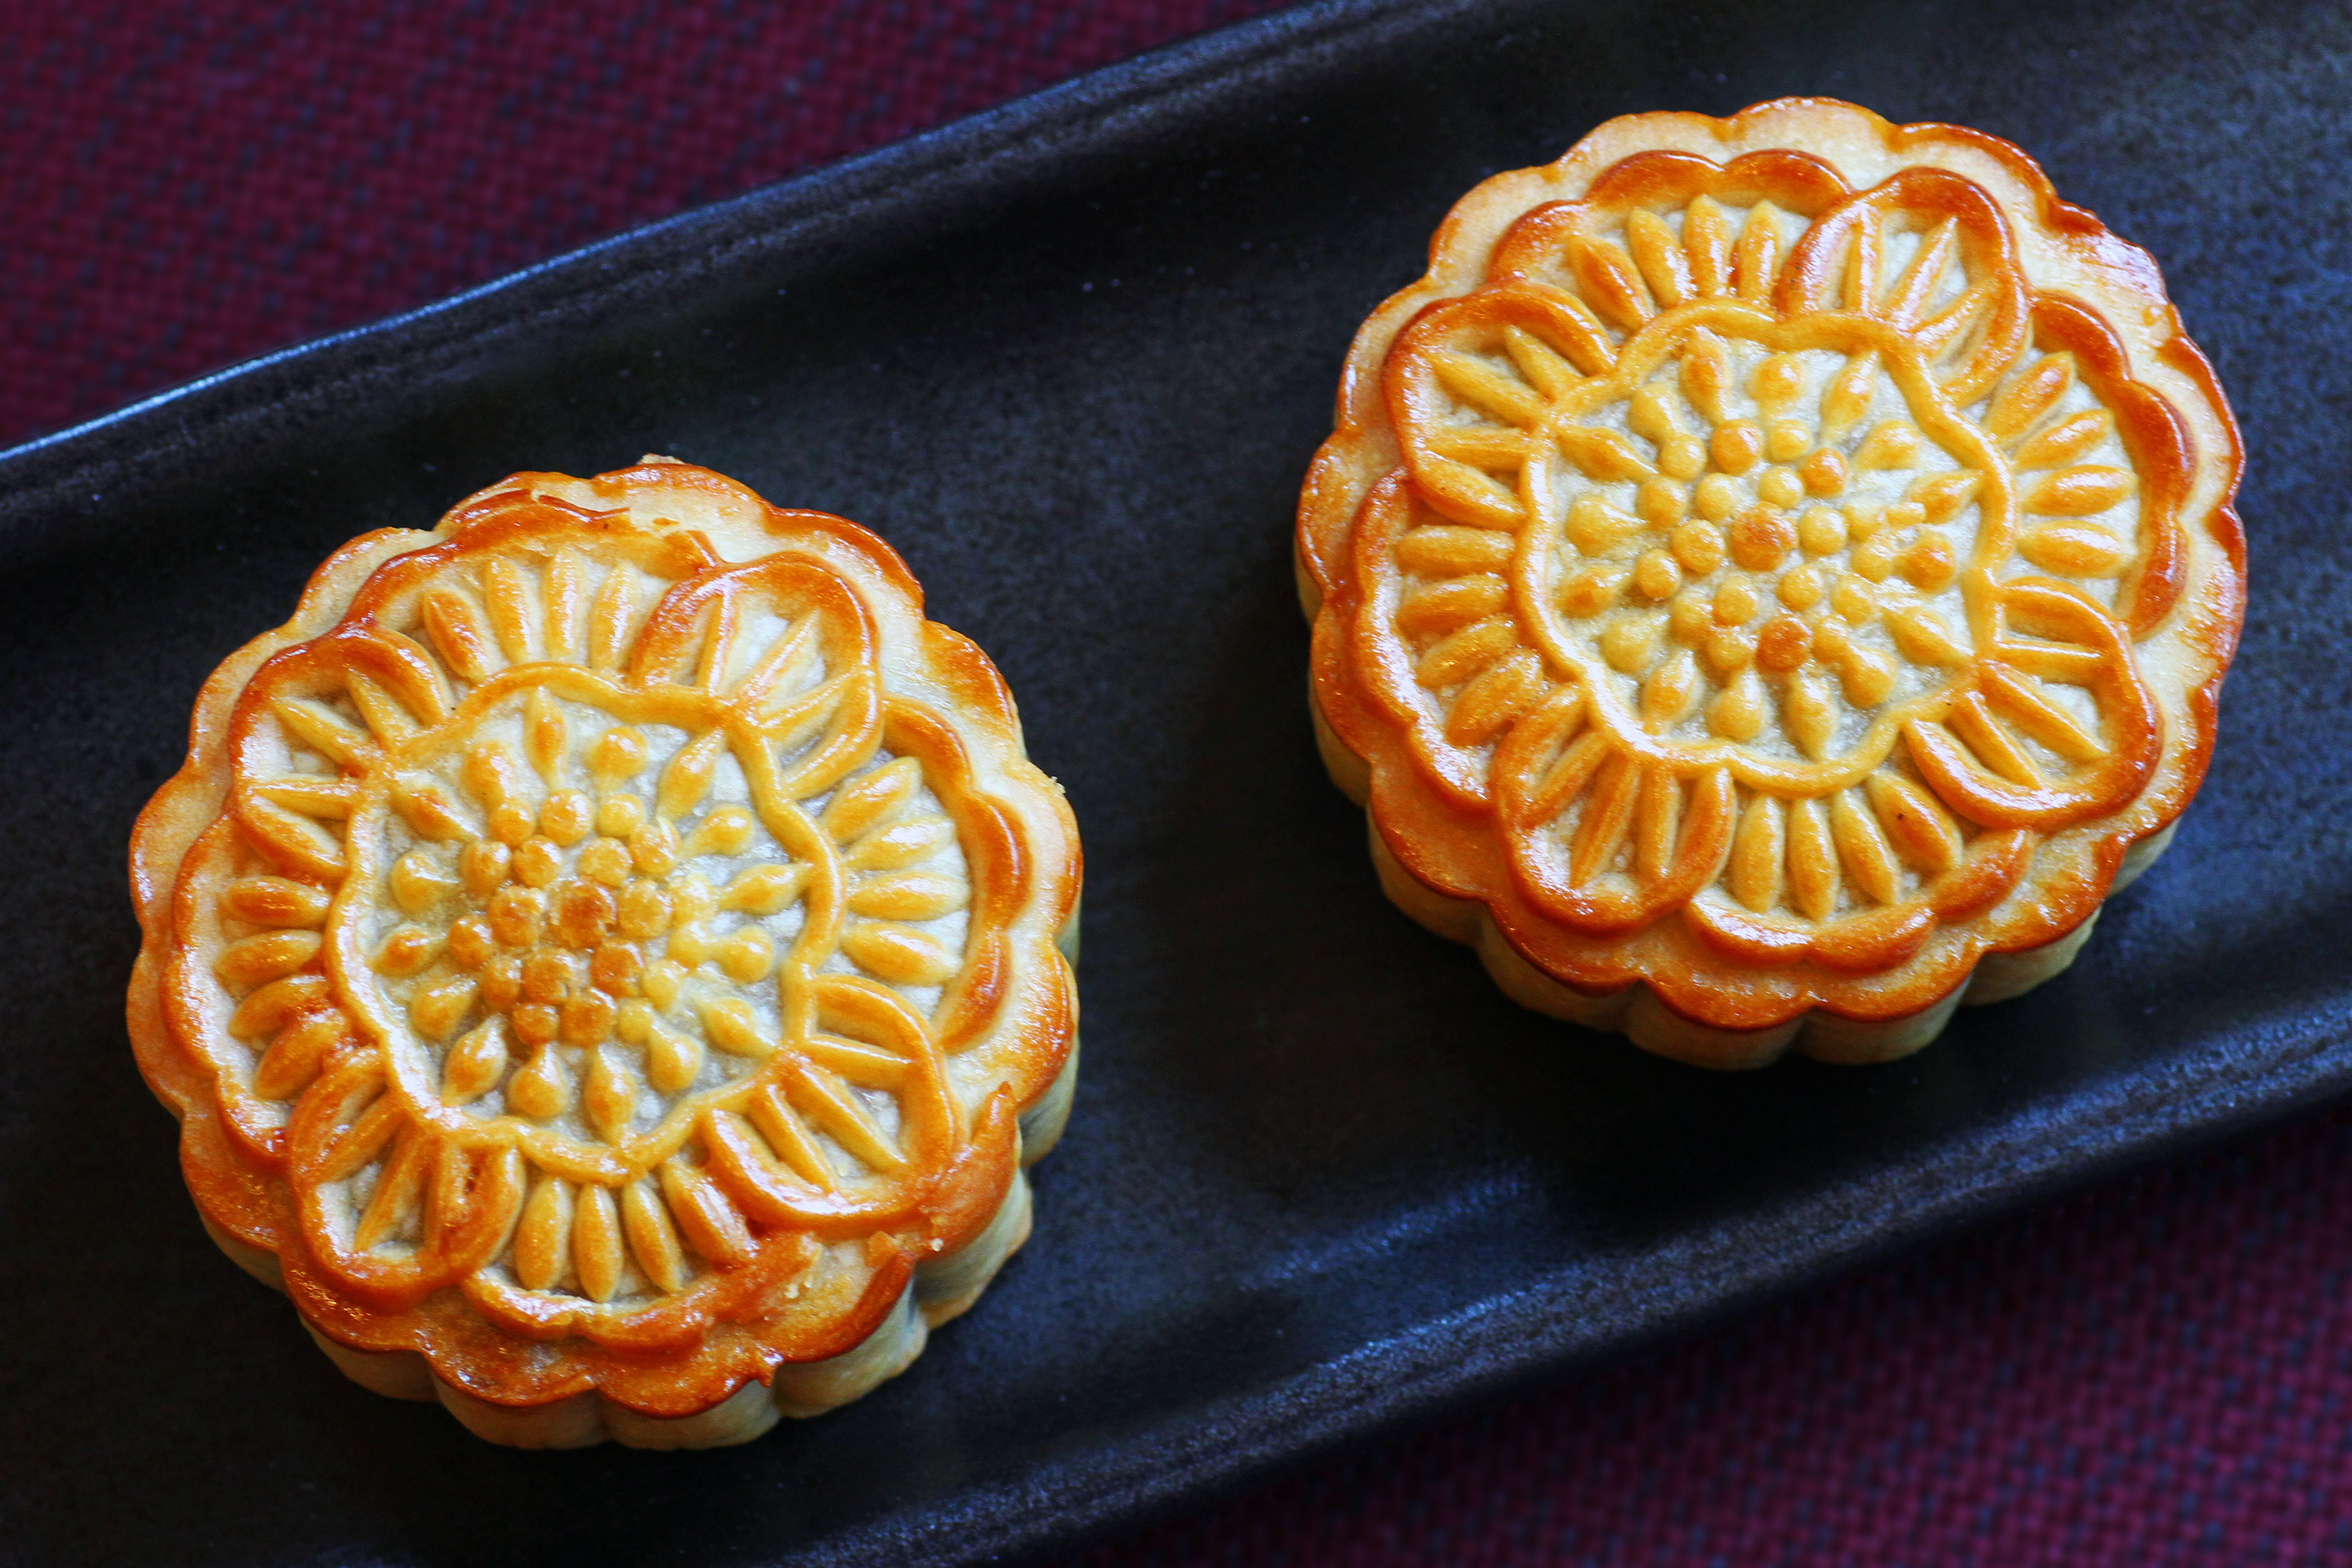 chinese mooncake festival The office of global and community initiatives cordially invites you to join us on monday, september 24th for mooncakes, tea and coffee in celebration of the chinese mid-autumn festival.